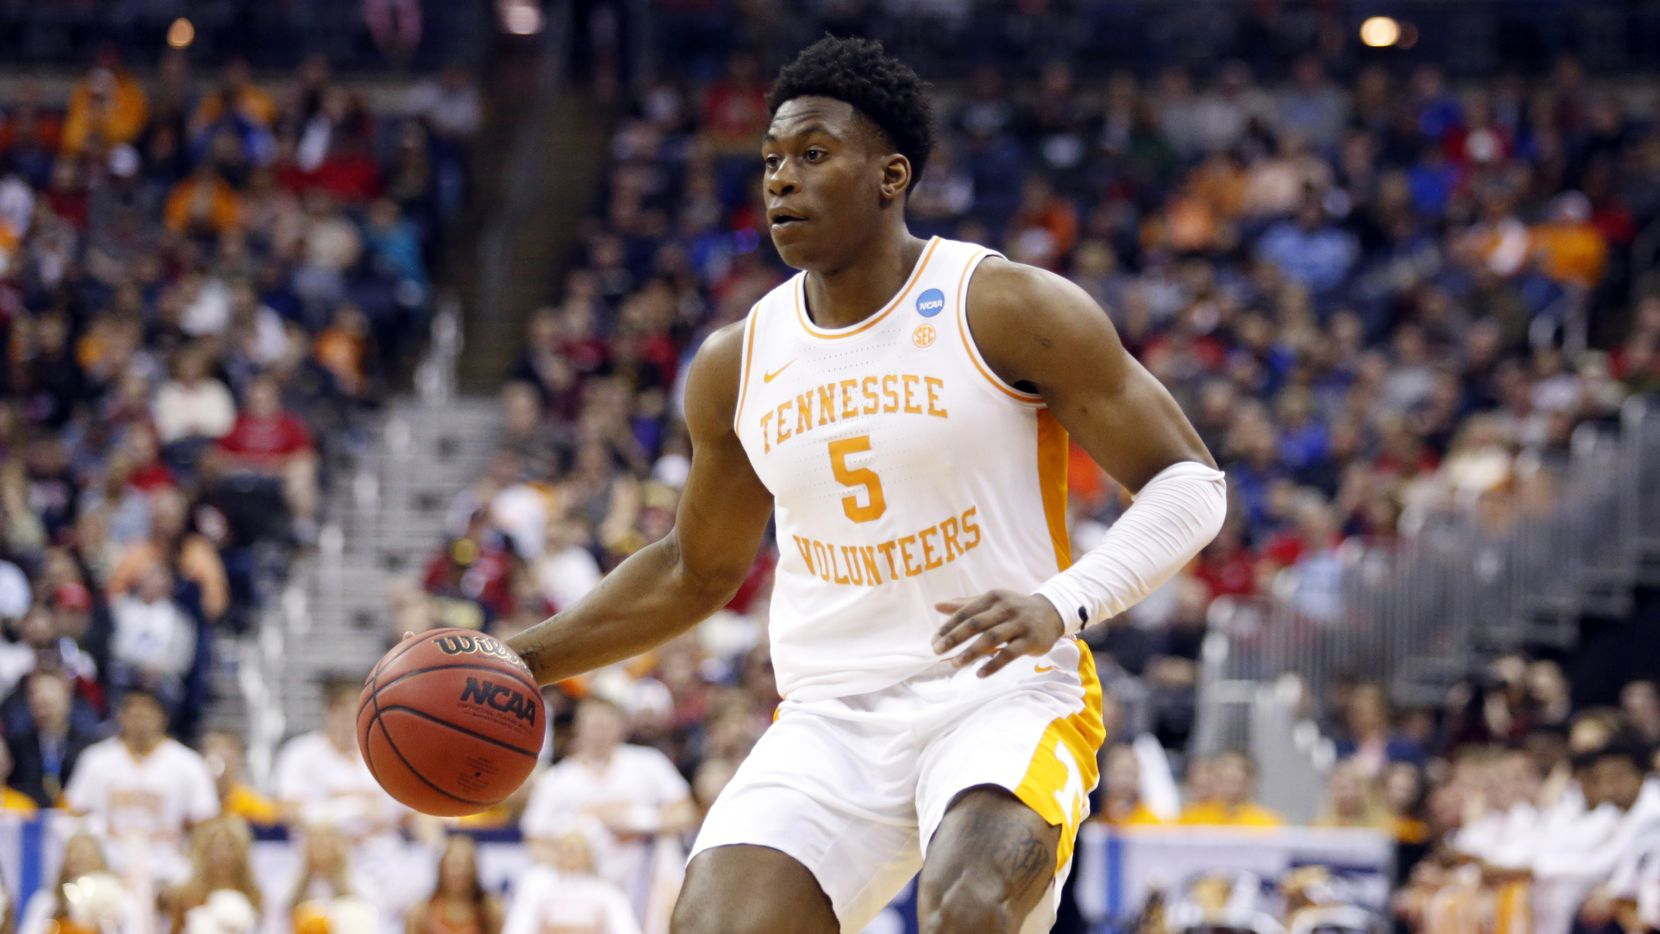 Tennessee's Admiral Schofield drives against Colgate in the first half during a first round men's college basketball game in the NCAA Tournament in Columbus, Ohio, Friday, March 22, 2019. (AP Photo/Paul Vernon)